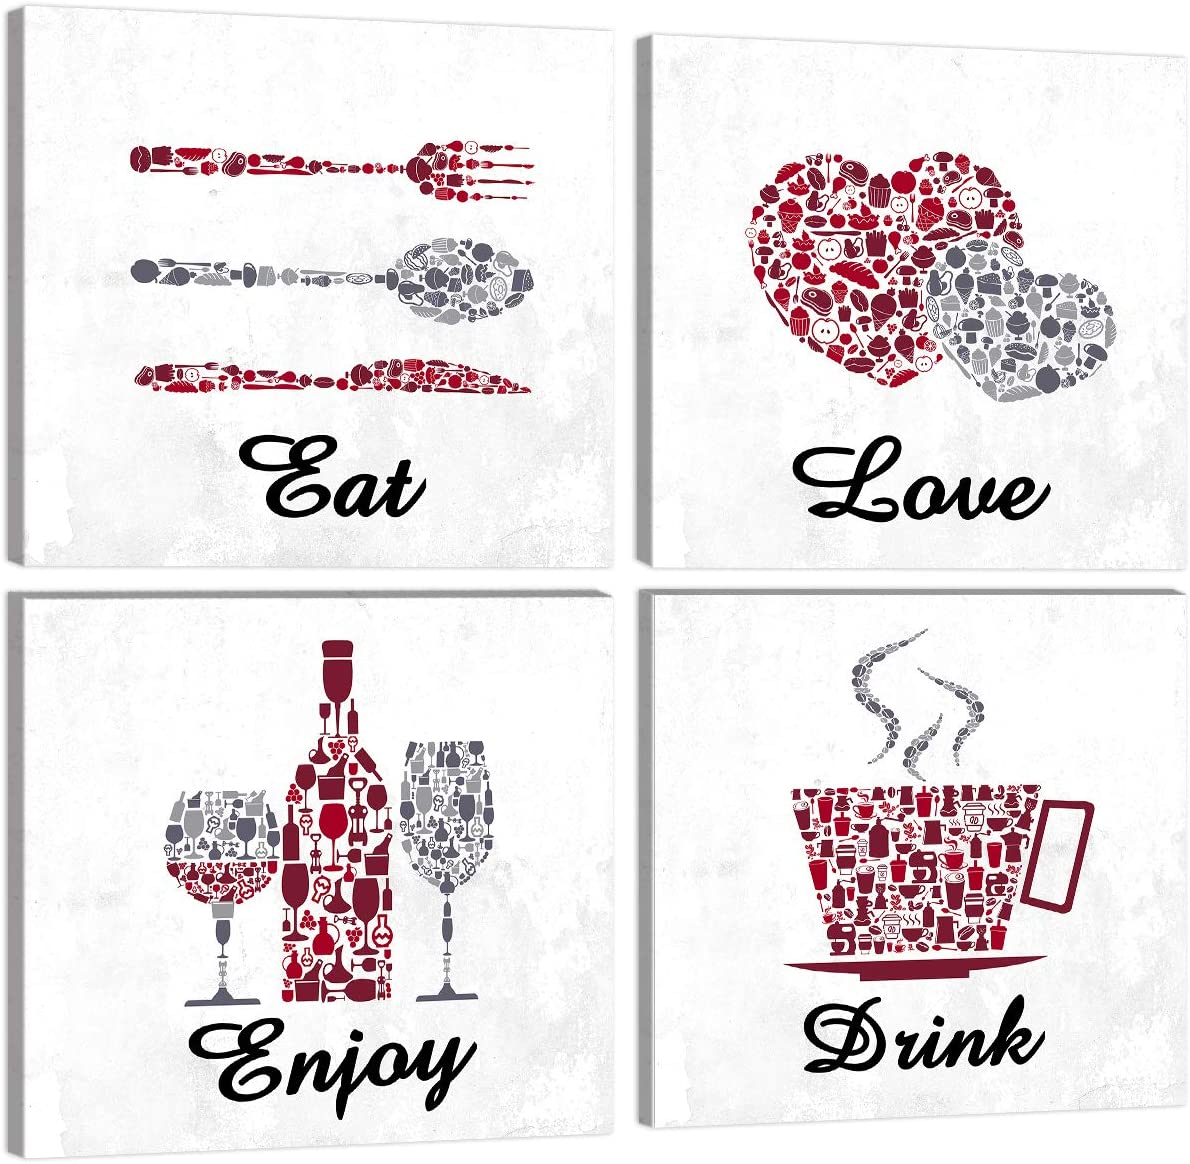 KALAWA Inspirational Kitchen Signs Restaurant Wall Decor Funny Red Maroon Grey White Cafe Bar Wall Decor Eat Drink Love Enjoy Farmhouse Dining Room House Decor Canvas Framed Ready to Hang 12x12 Inch